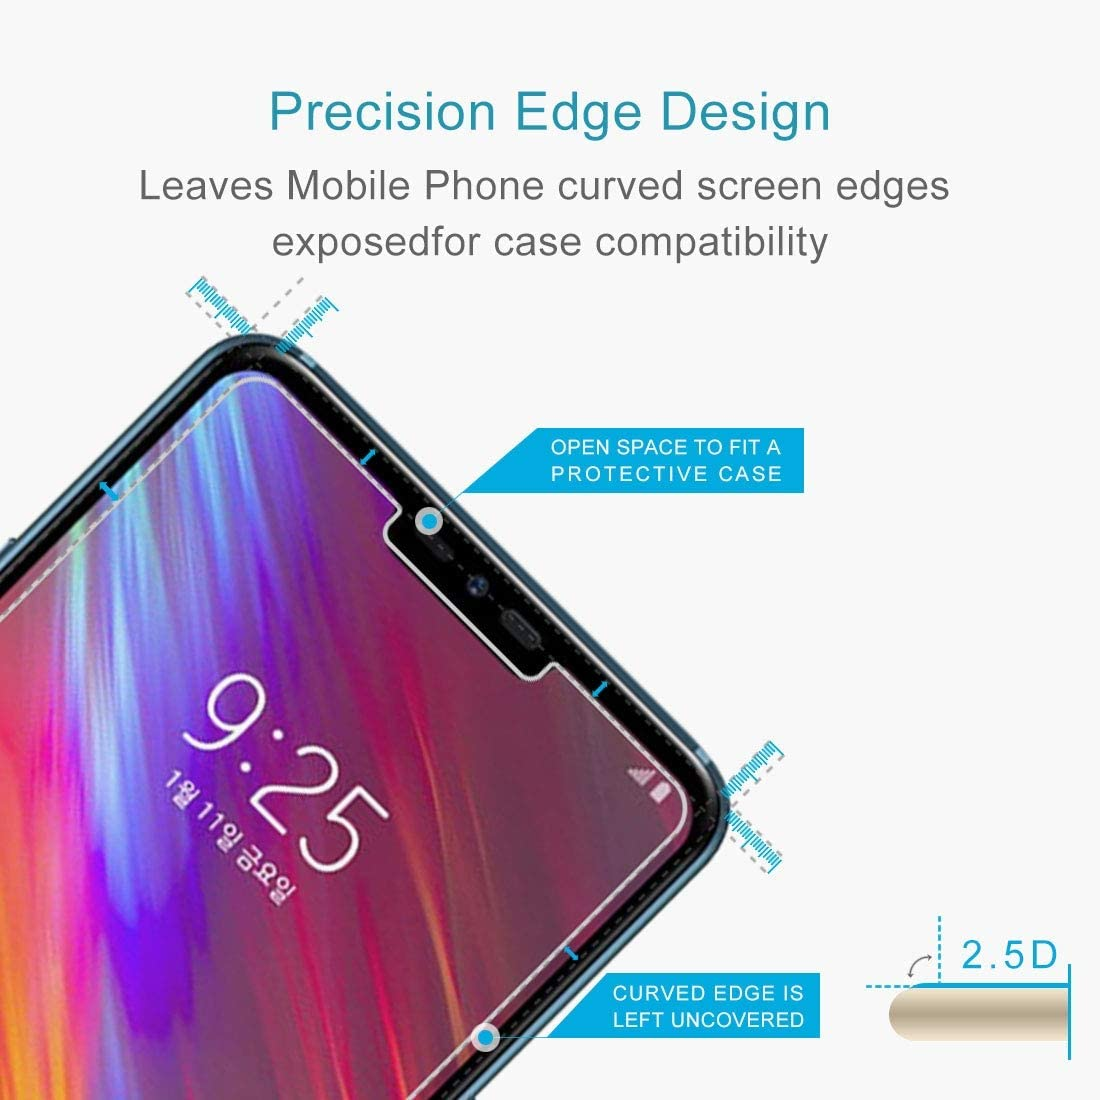 100 PCS for Asus Zenfone 2 Laser YINZHI Screen Protector Film ZE550KL 0.26mm 9H Surface Hardness 2.5D Explosion-Proof Tempered Glass Screen Film Clear